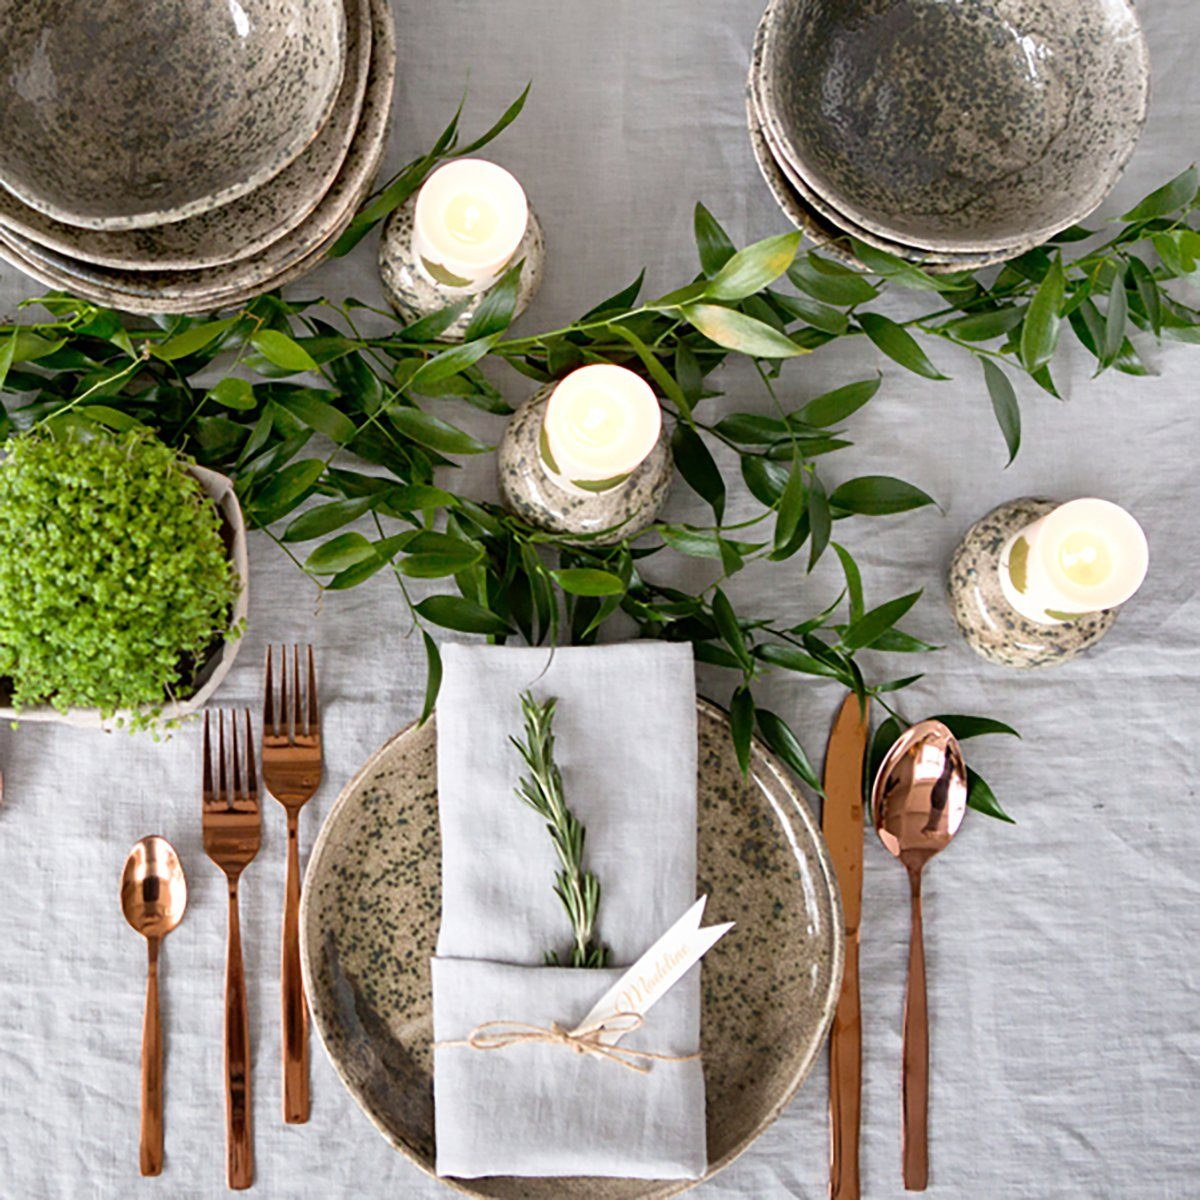 Holiday table setting with Linen napkins and rose gold cutlery